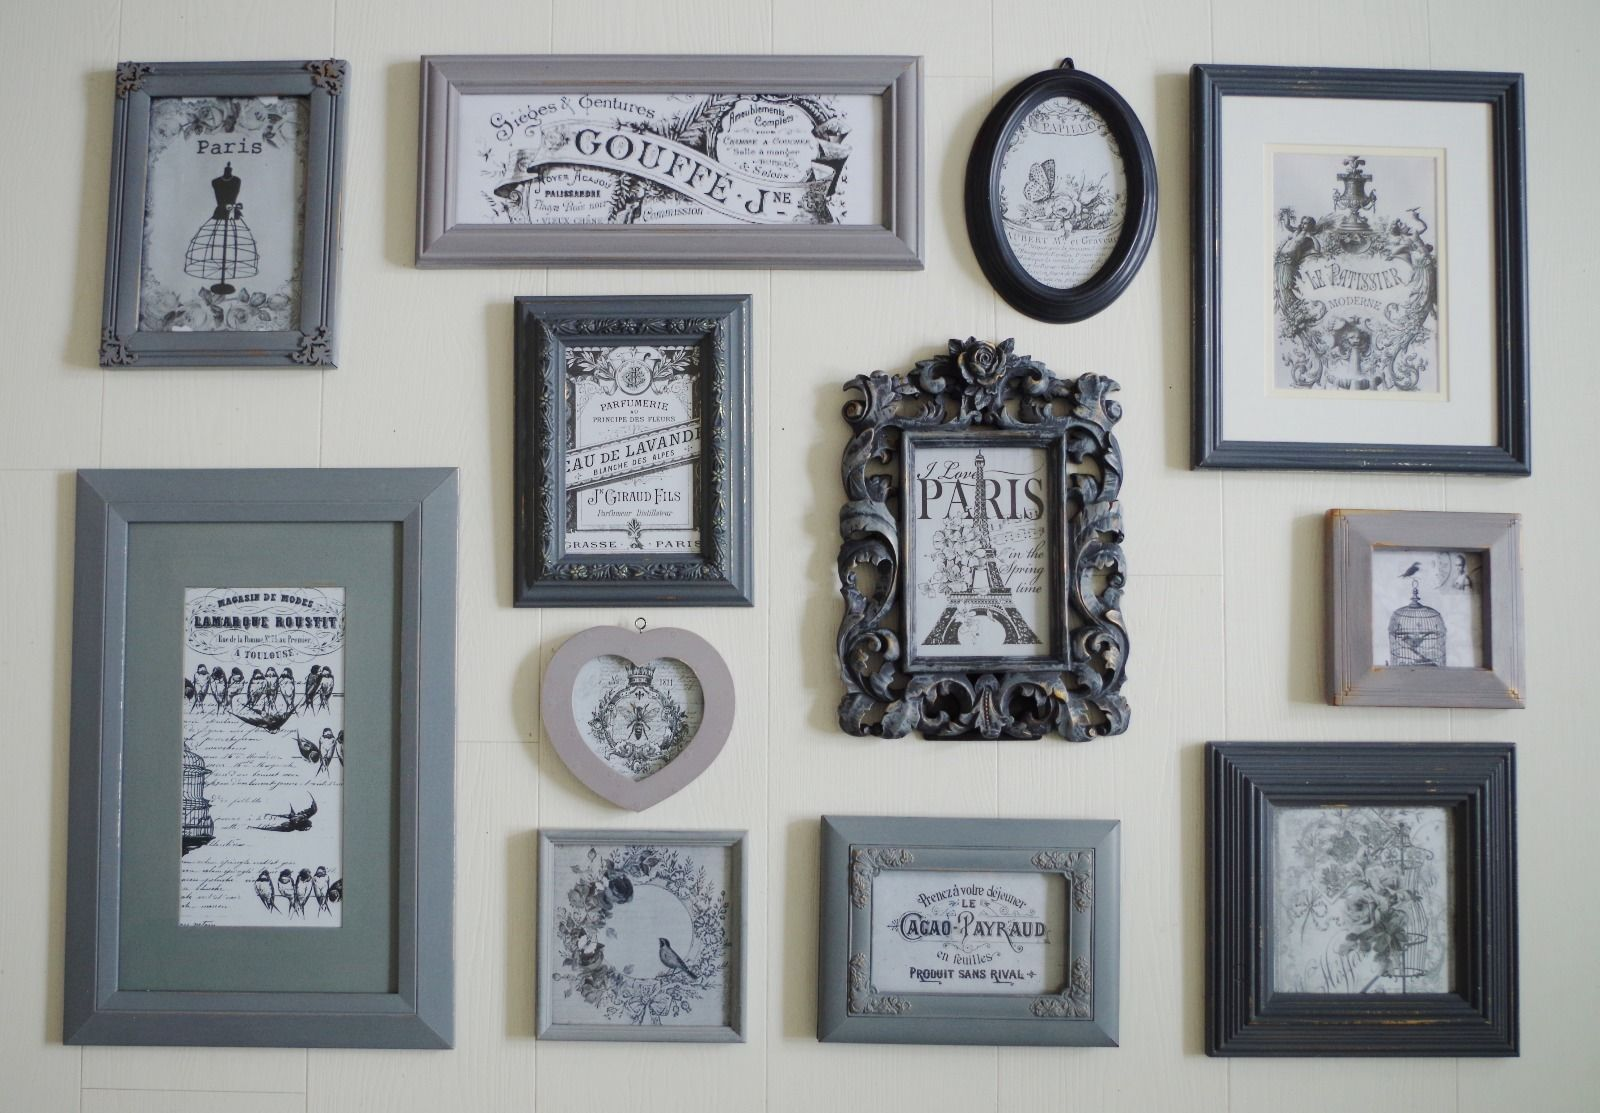 12 shabby chic picture frames shades of grey farrow ball paris 12 shabby chic picture frames shades of grey farrow ball paris feature wall jeuxipadfo Images